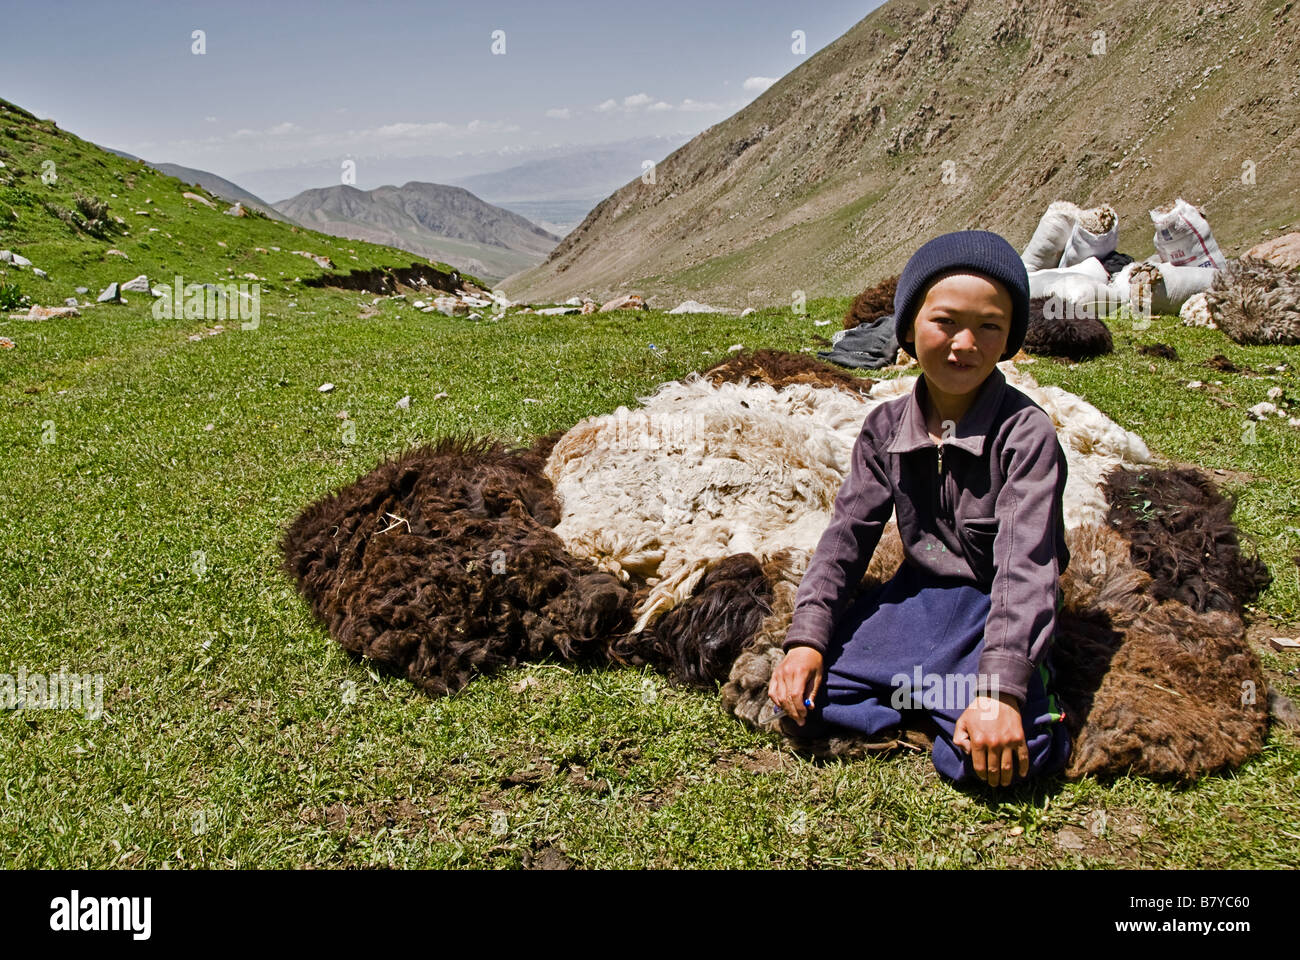 Kyrgyz nomads shearing sheep in the fields Kyrgyzstan - Stock Image